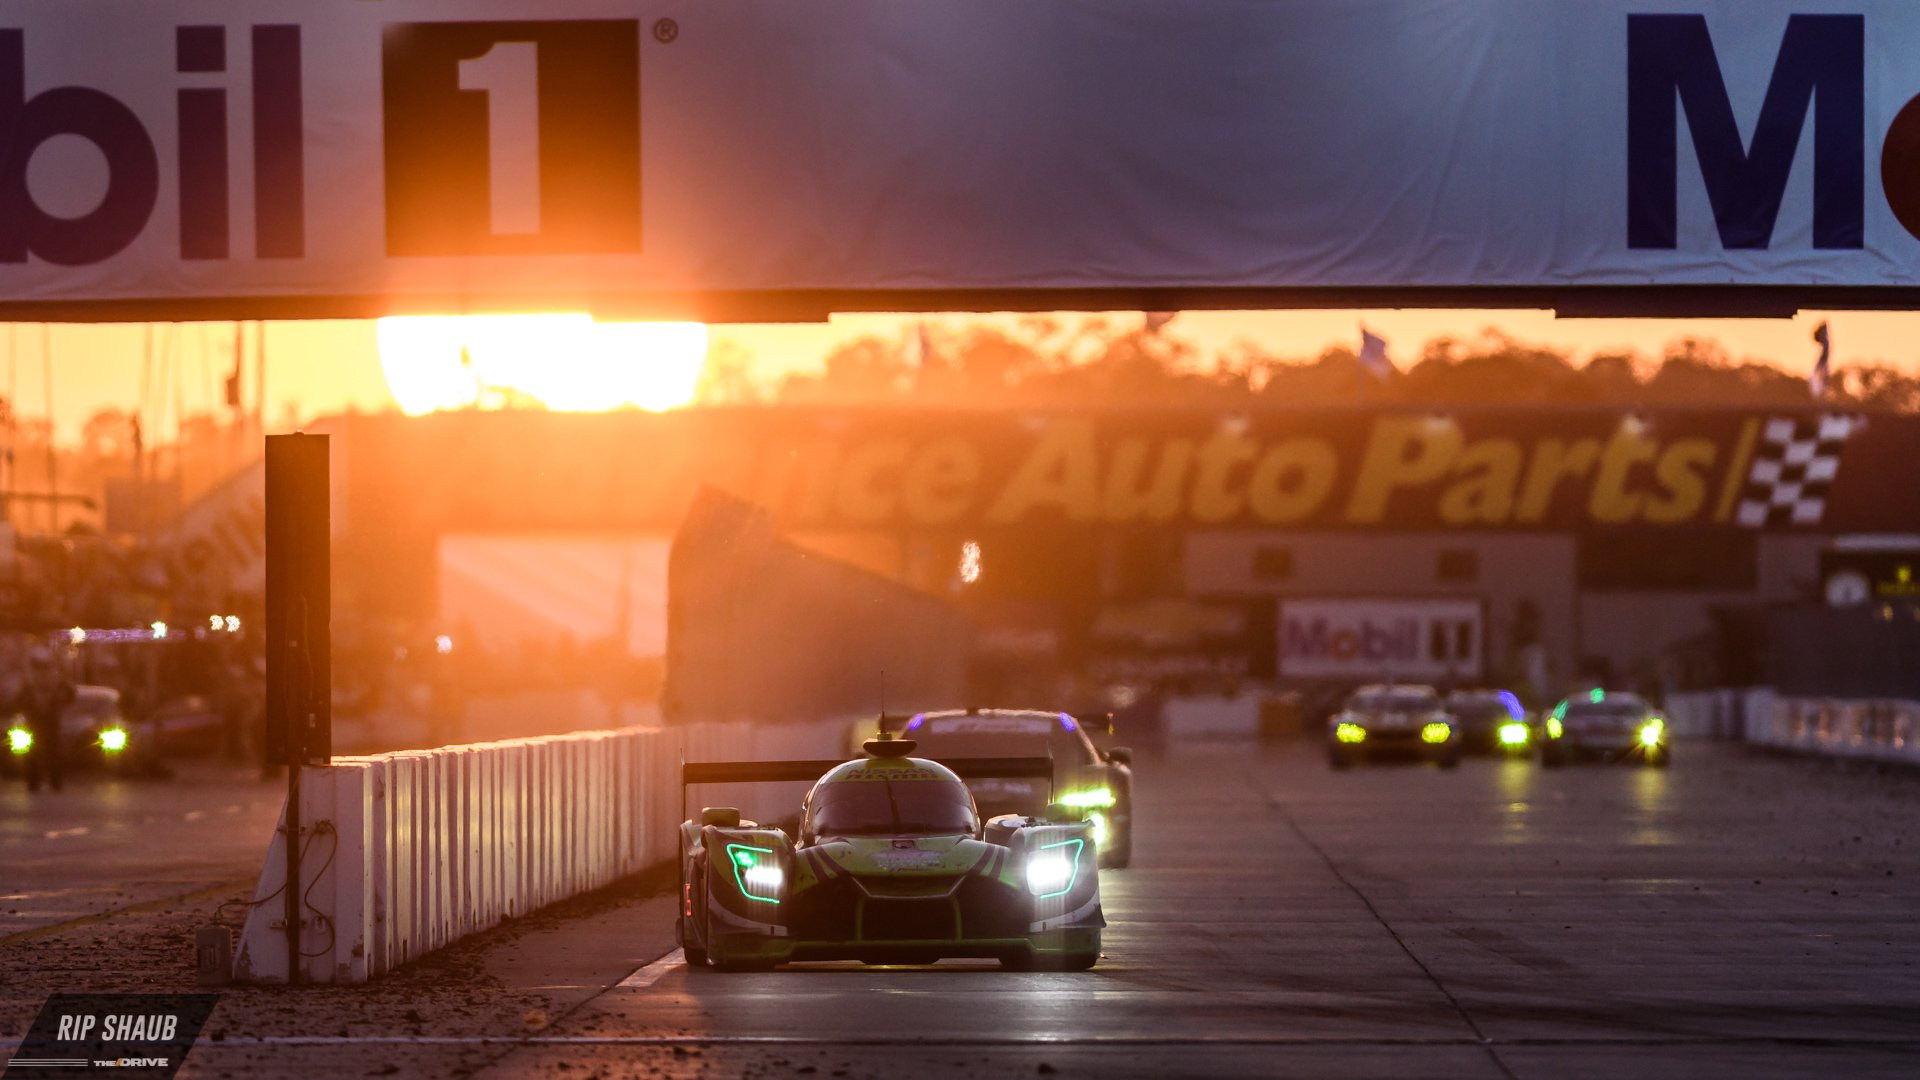 Tequila Patron Esm Nabs First Victory At Sebring For Nissan Since 1994 photo